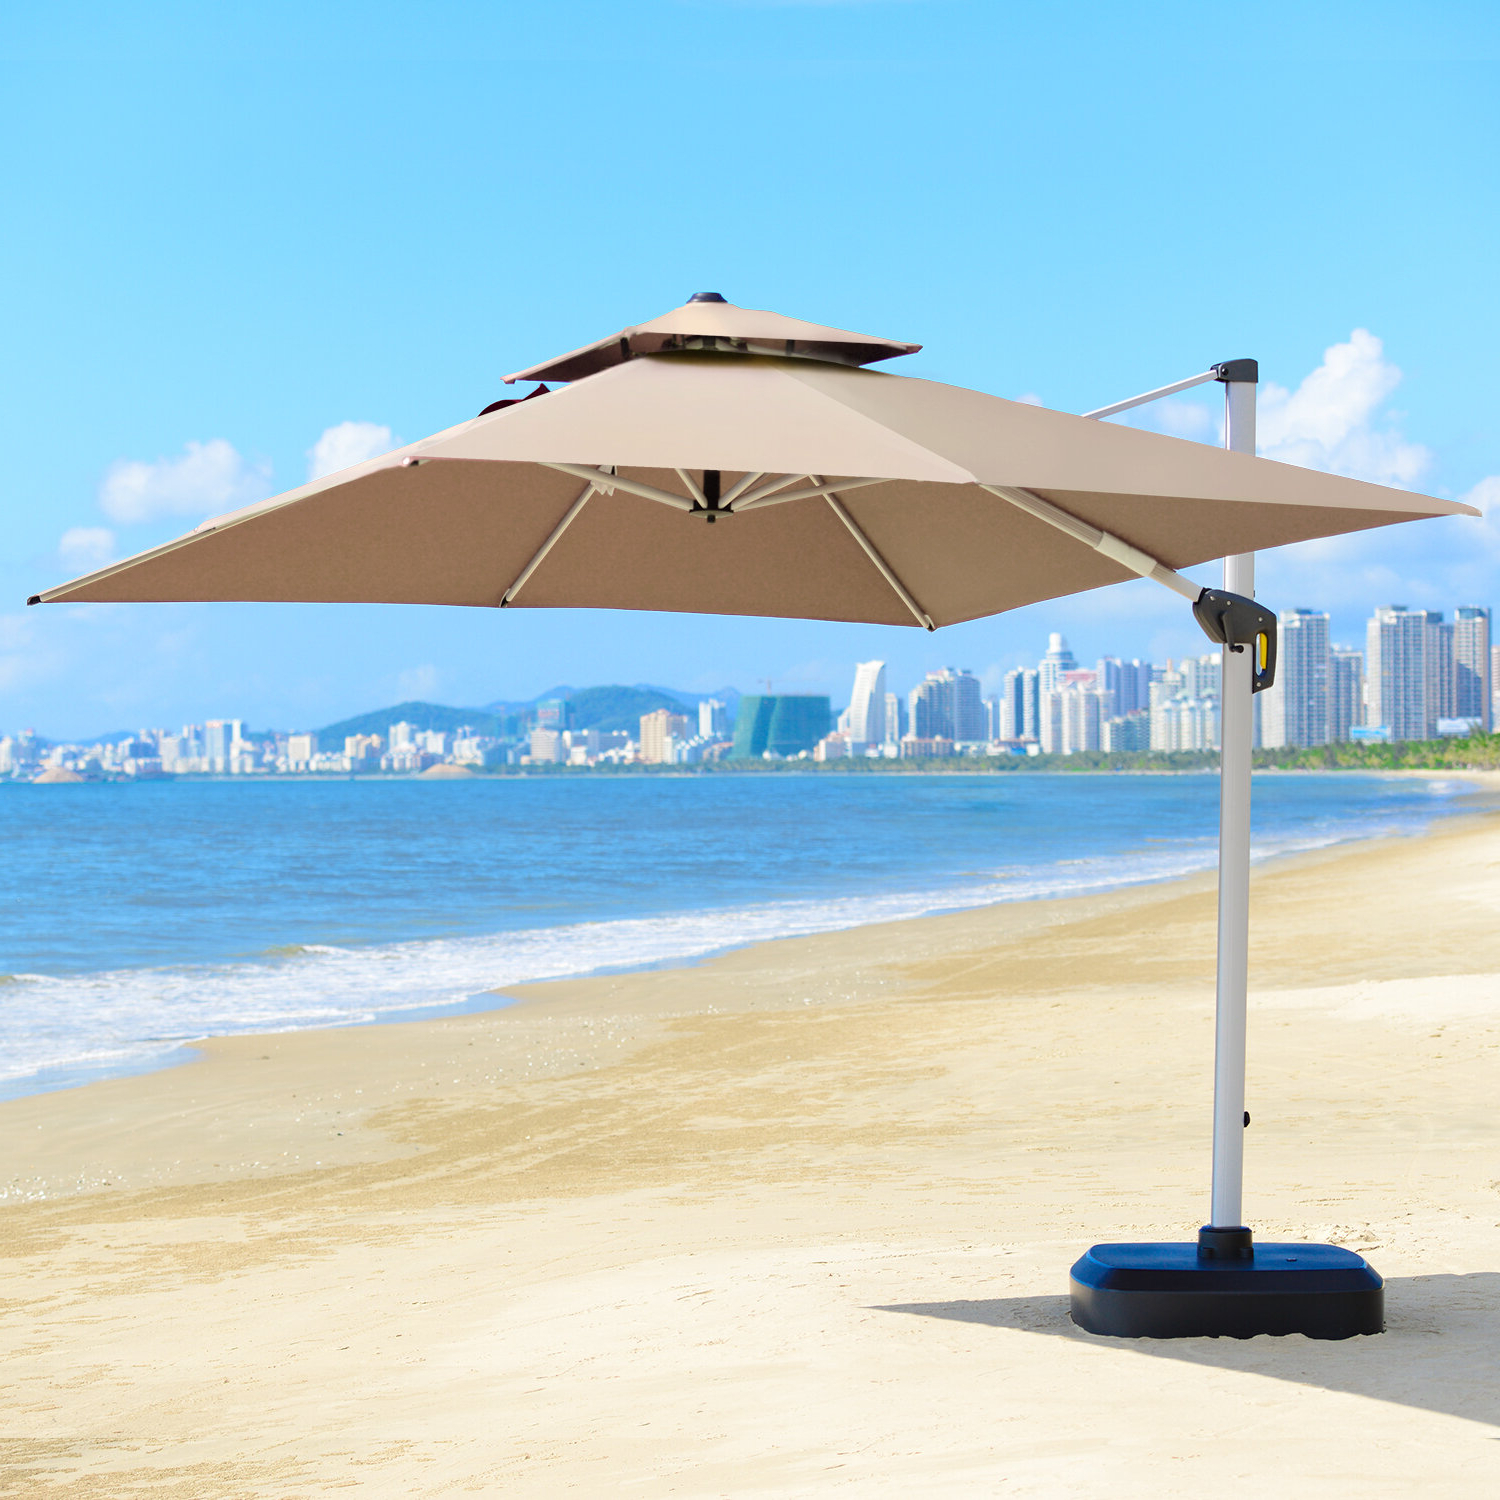 Most Recent Maidste Square Cantilever Umbrellas With Macclesfield 10' Square Cantilever Umbrella (View 7 of 20)